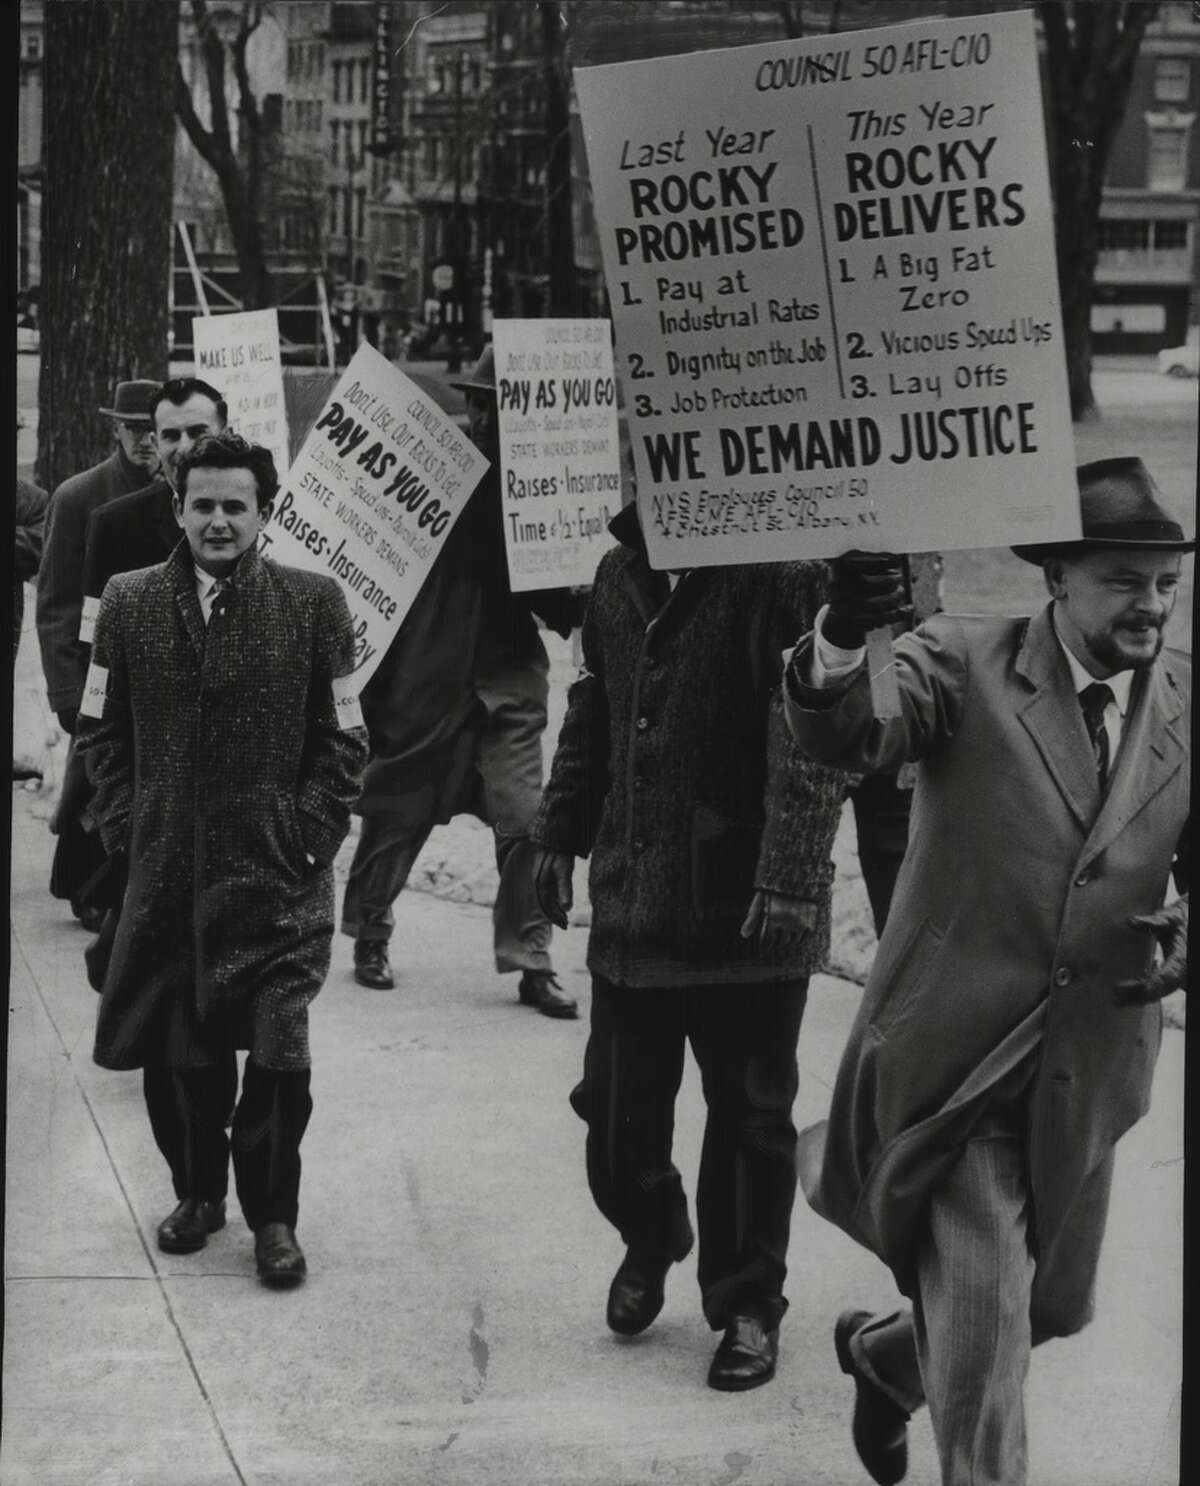 The Members Council 50, American Federation of Labor and Congress of Industrial Organizations (AFL-CIO), Union of State Employees, marches on the Capitol in 1960. The  AFL-CIO describes itself as a federation of 55 national and international labor unions that represent 12.5 million workers.